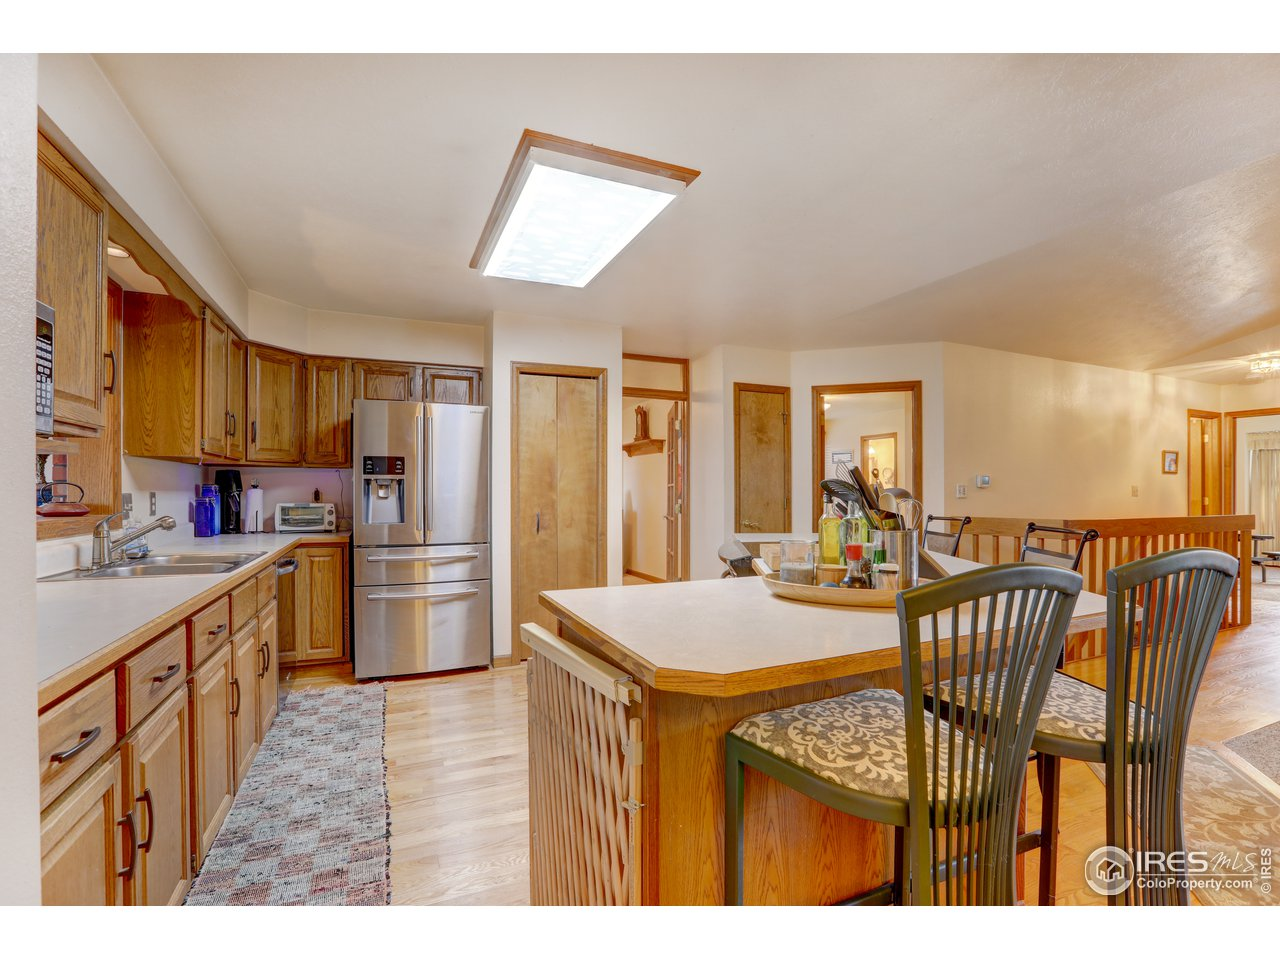 Hardwood floors in kitchen and dining area